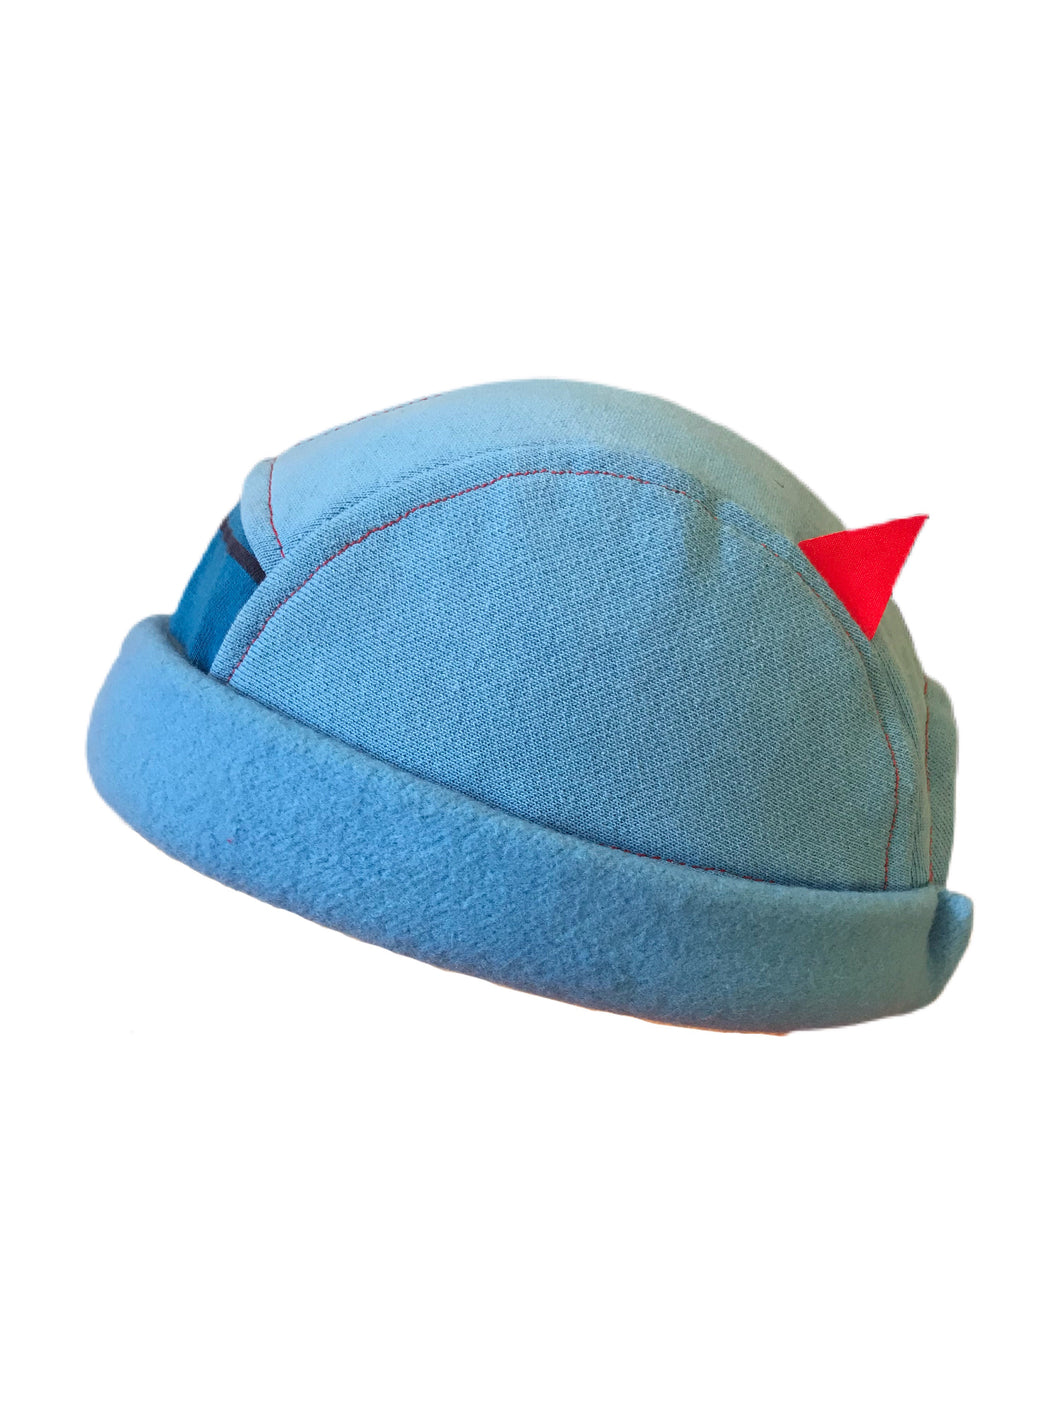 R3 CrewCap Sport [Betty Blue]